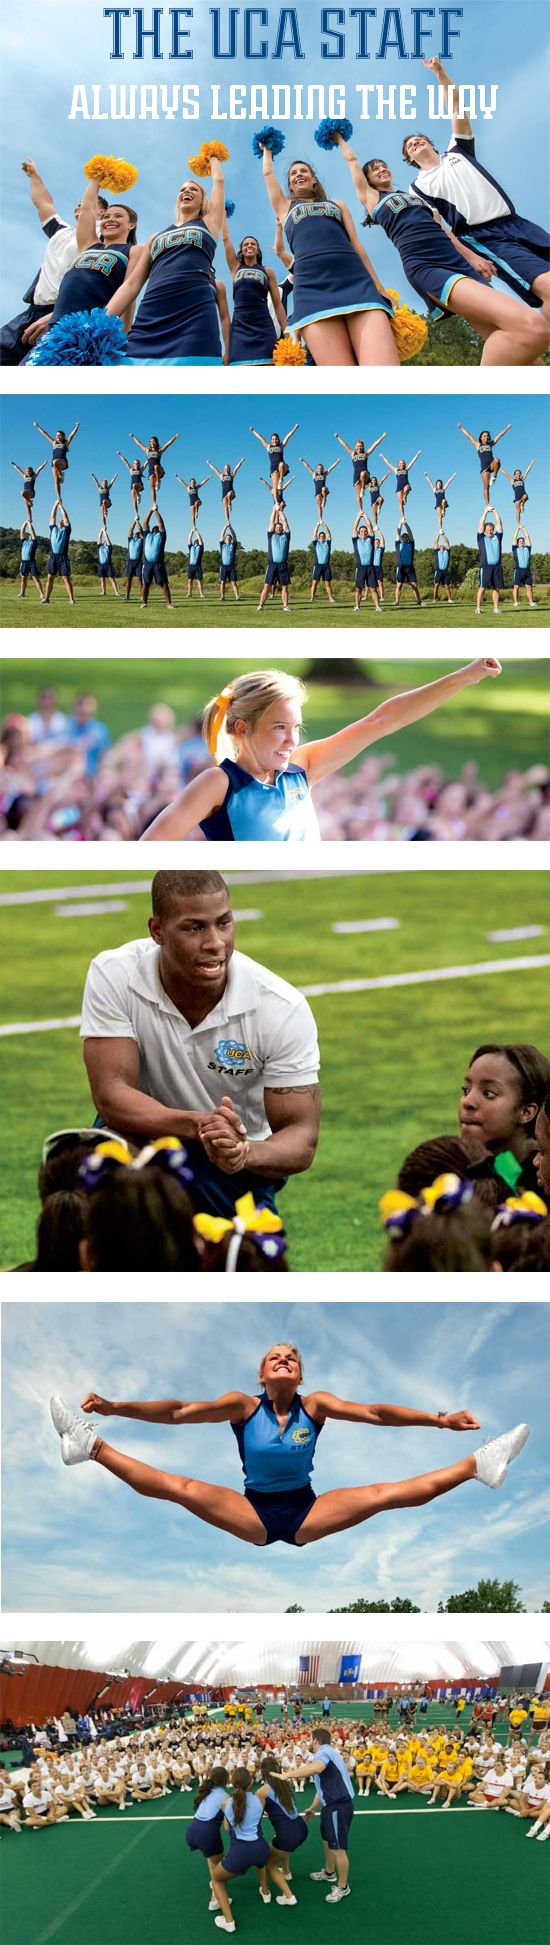 The UCA Staff | Your cheerleading squad will learn from the best at UCA Summer Camp! The UCA Staff are hand-picked from the nation's top collegiate programs, AACCA safety certified and level 2 background checked. #cheerleading